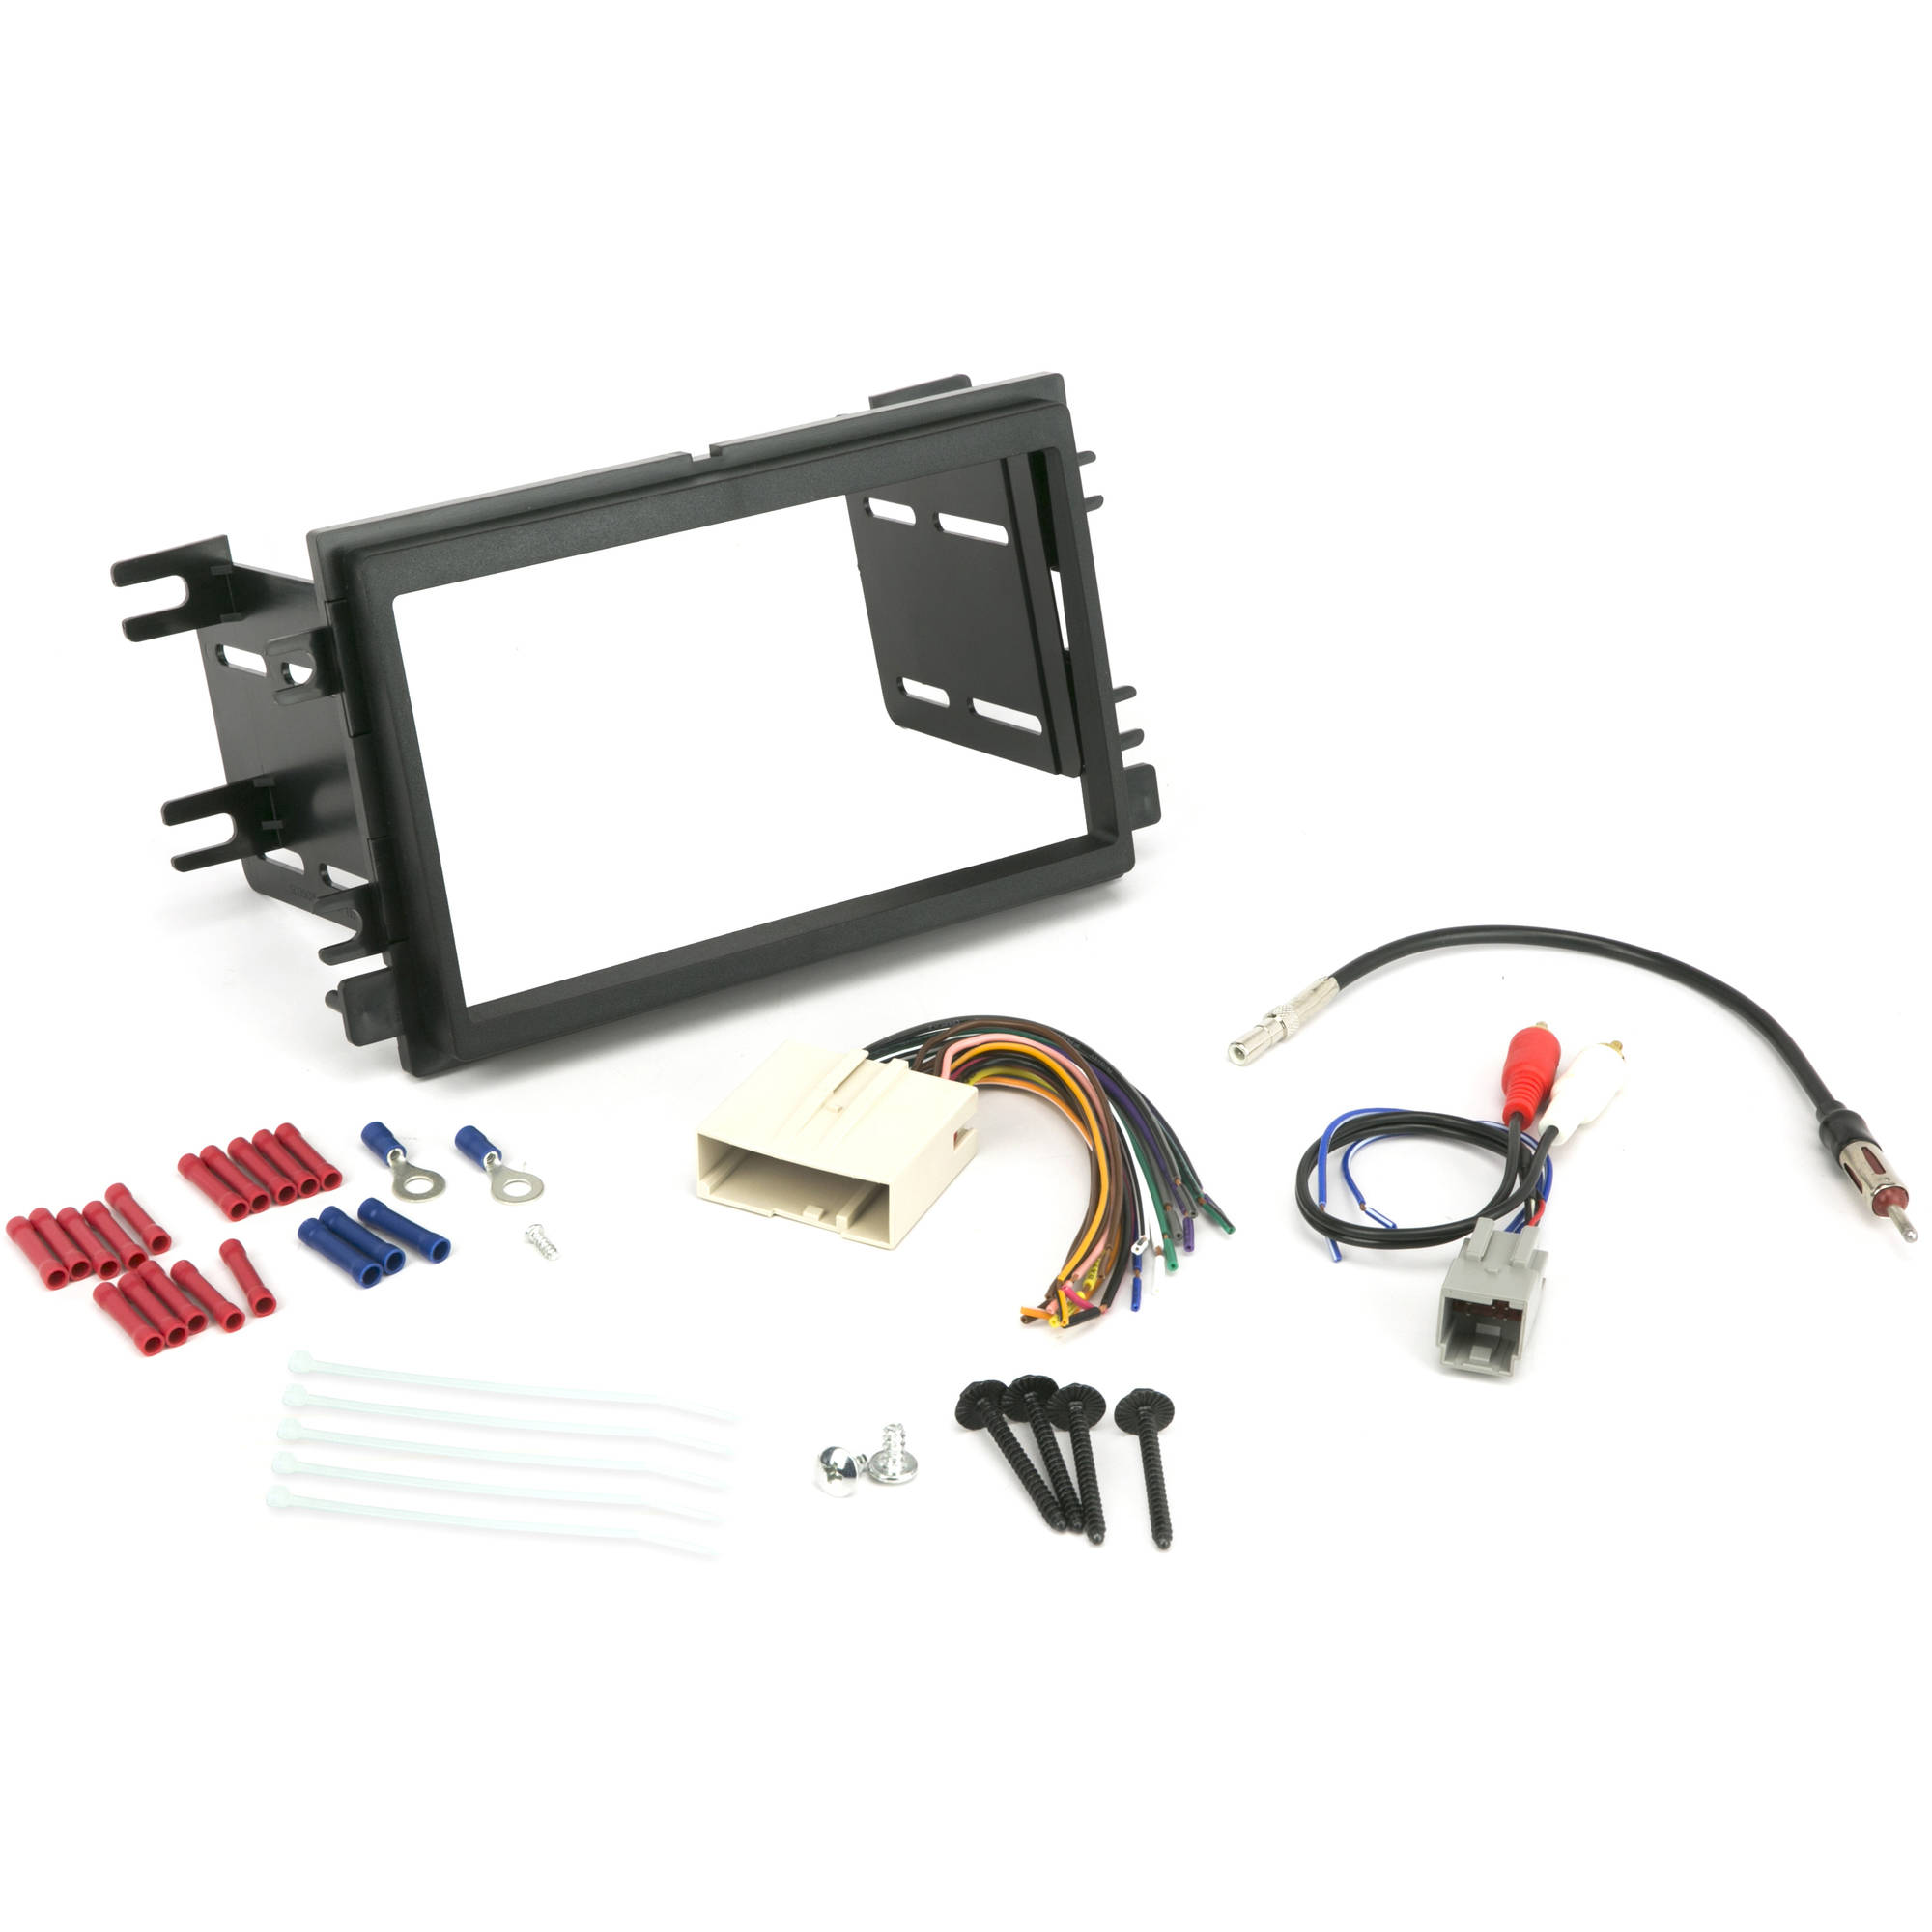 INSTALL CENTRIC ICFD6BN Ford/Lincoln/Mercury 2004-08 Double DIN, Premium Sound Complete Car Stereo Installation Kit